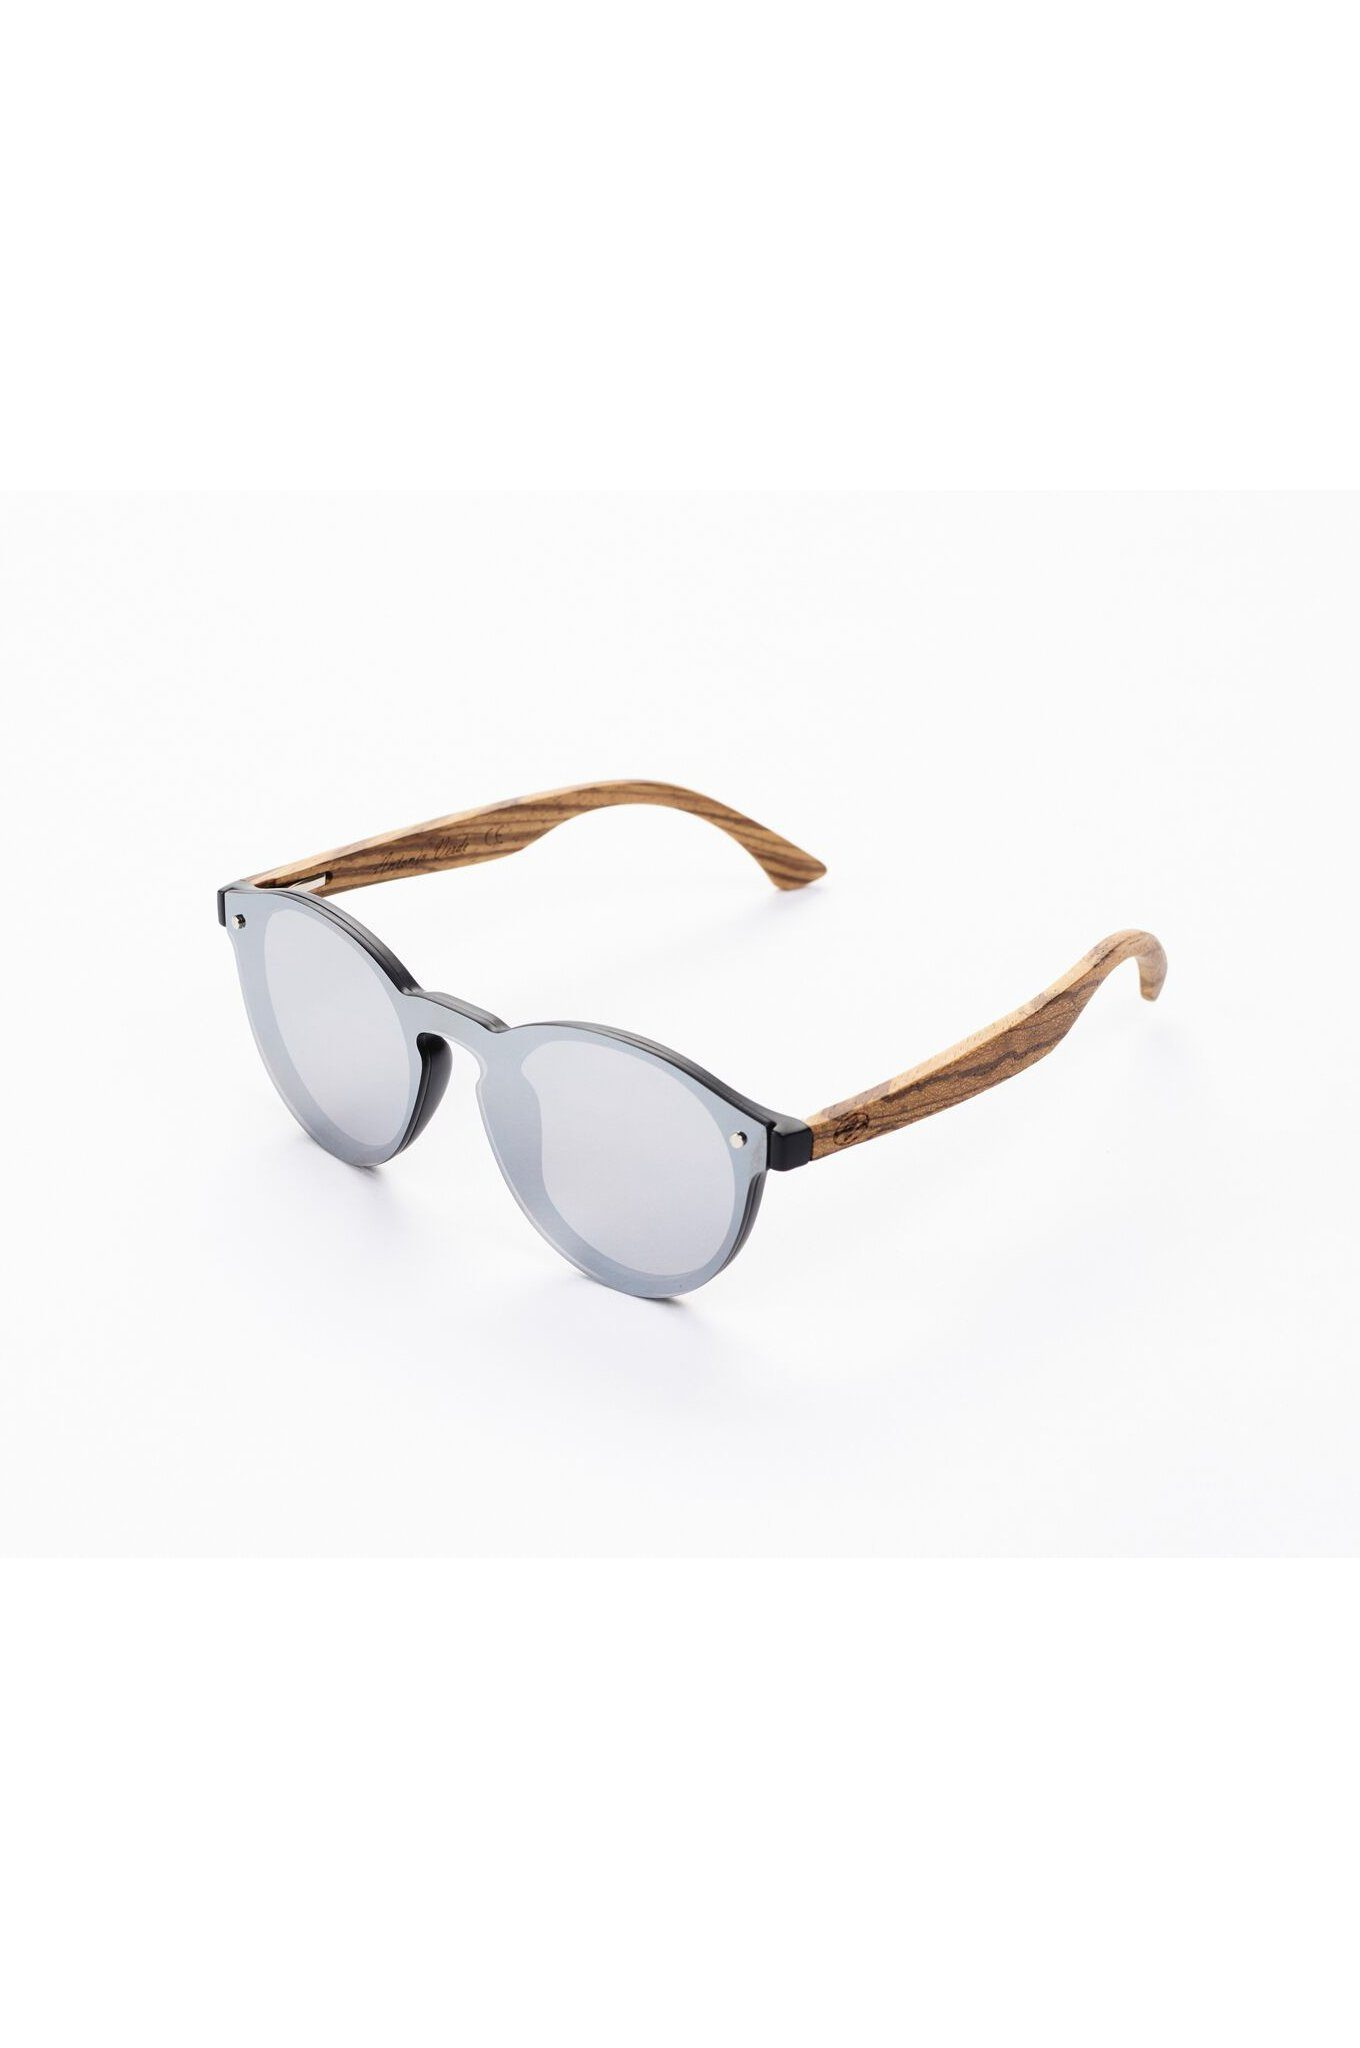 San Antonio Stone Sunglasses - Komodo Fashion